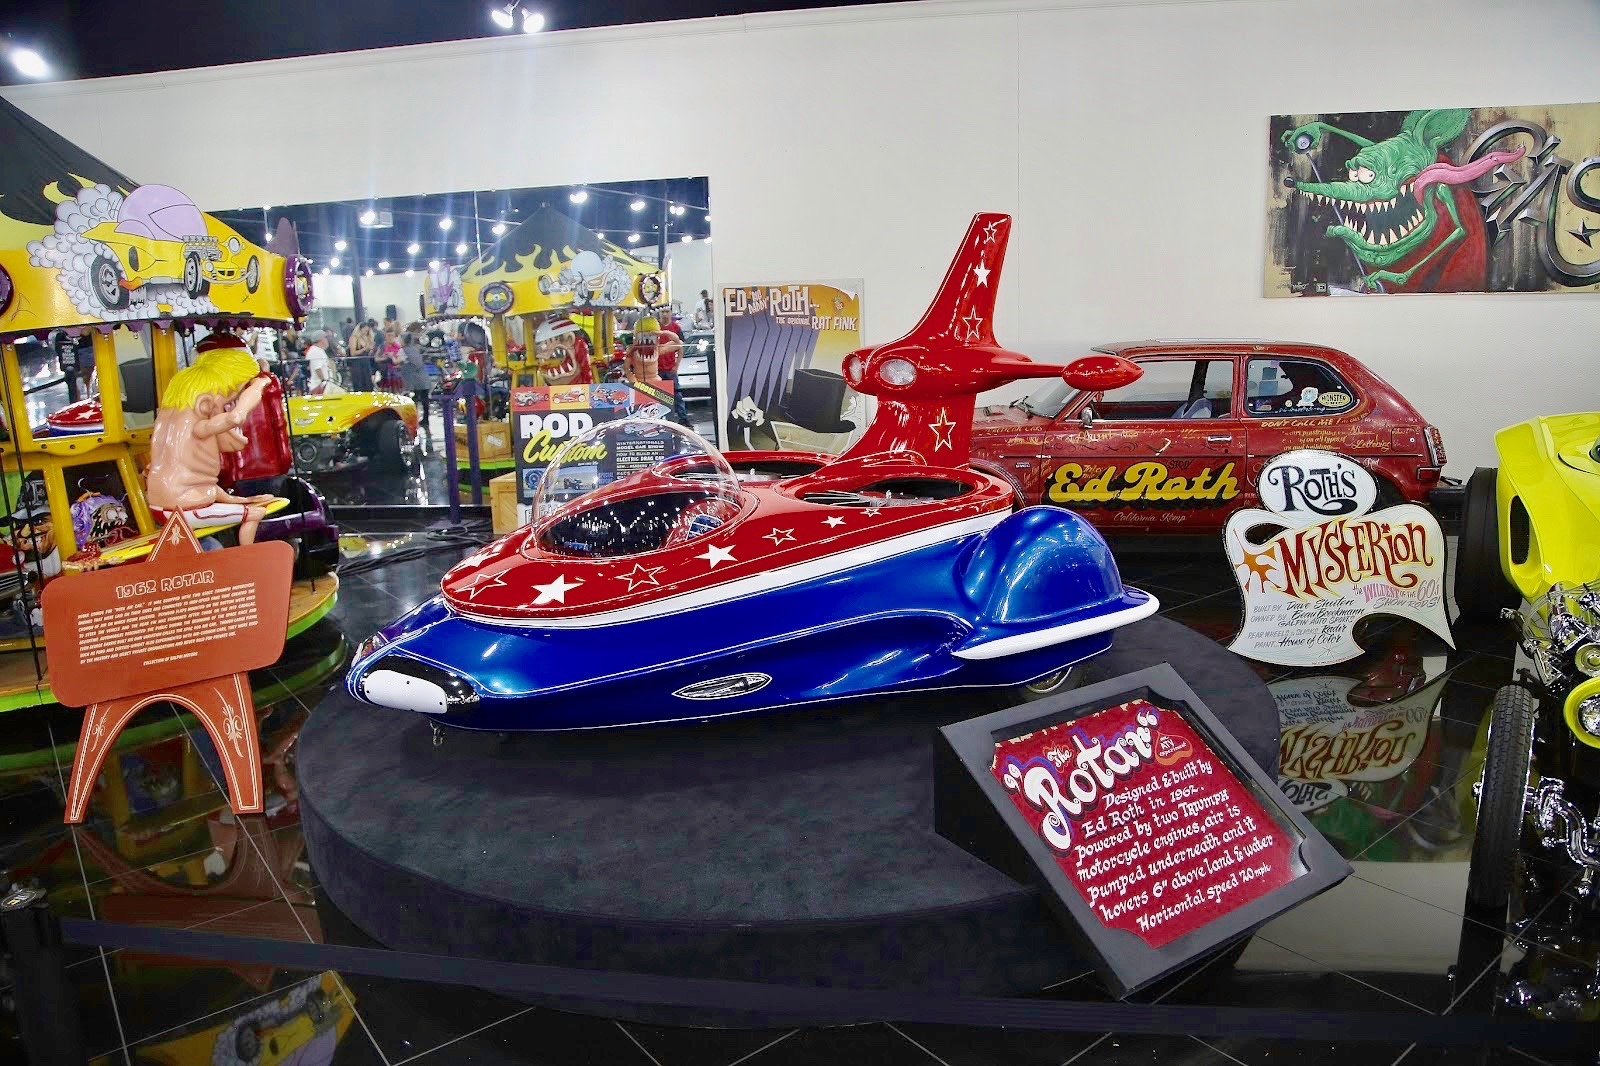 Galpin Car Show, Galpin show expects 1,000 vehicles, ClassicCars.com Journal